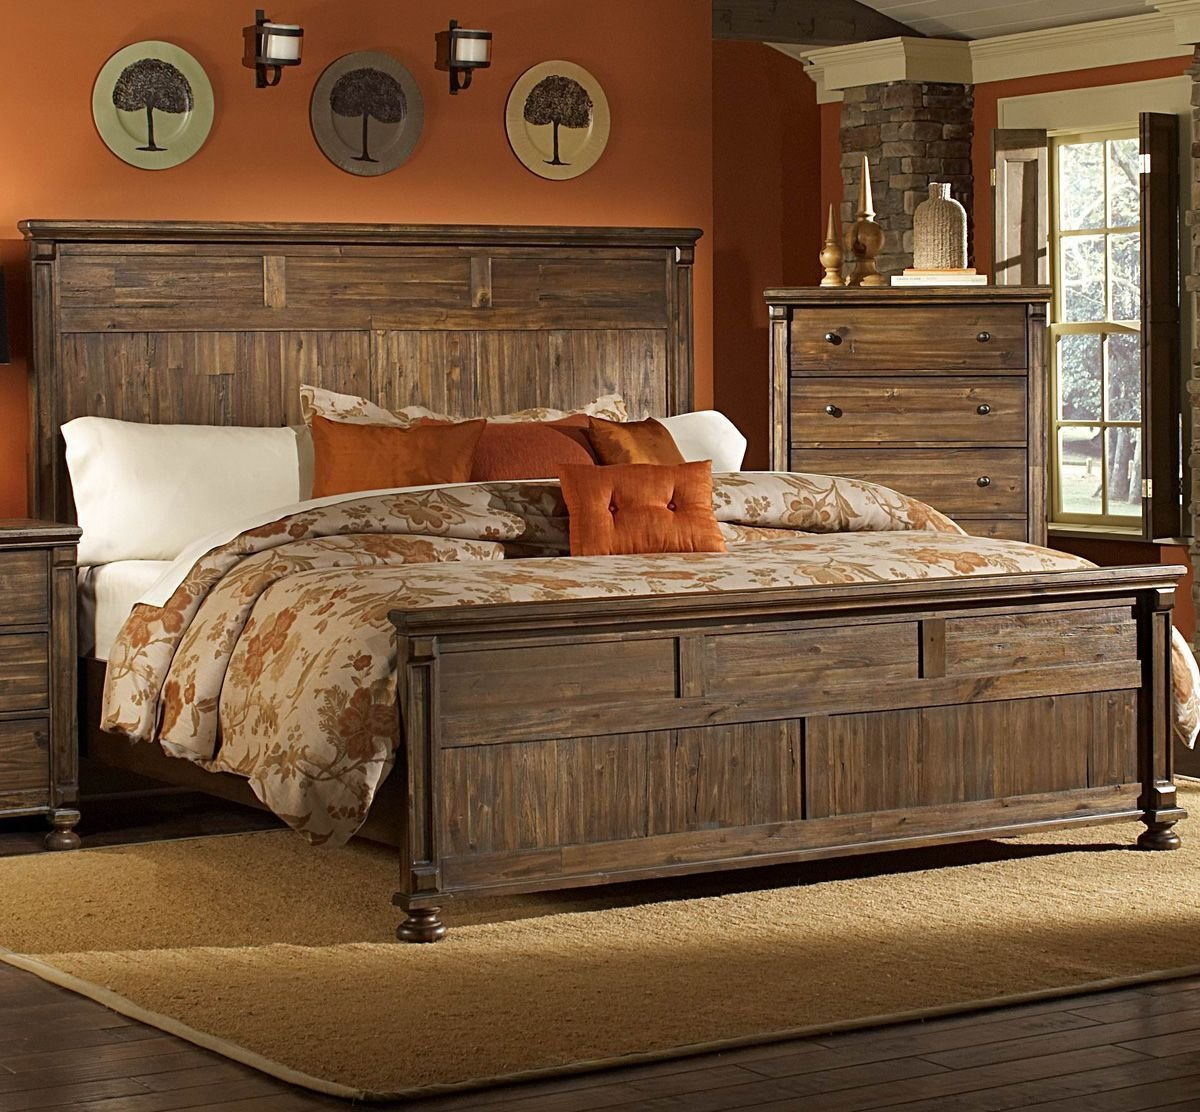 Best Rustic Furniture Set Master Bedroom Yes Please Our Forever Home Pinterest Rustic With Pictures